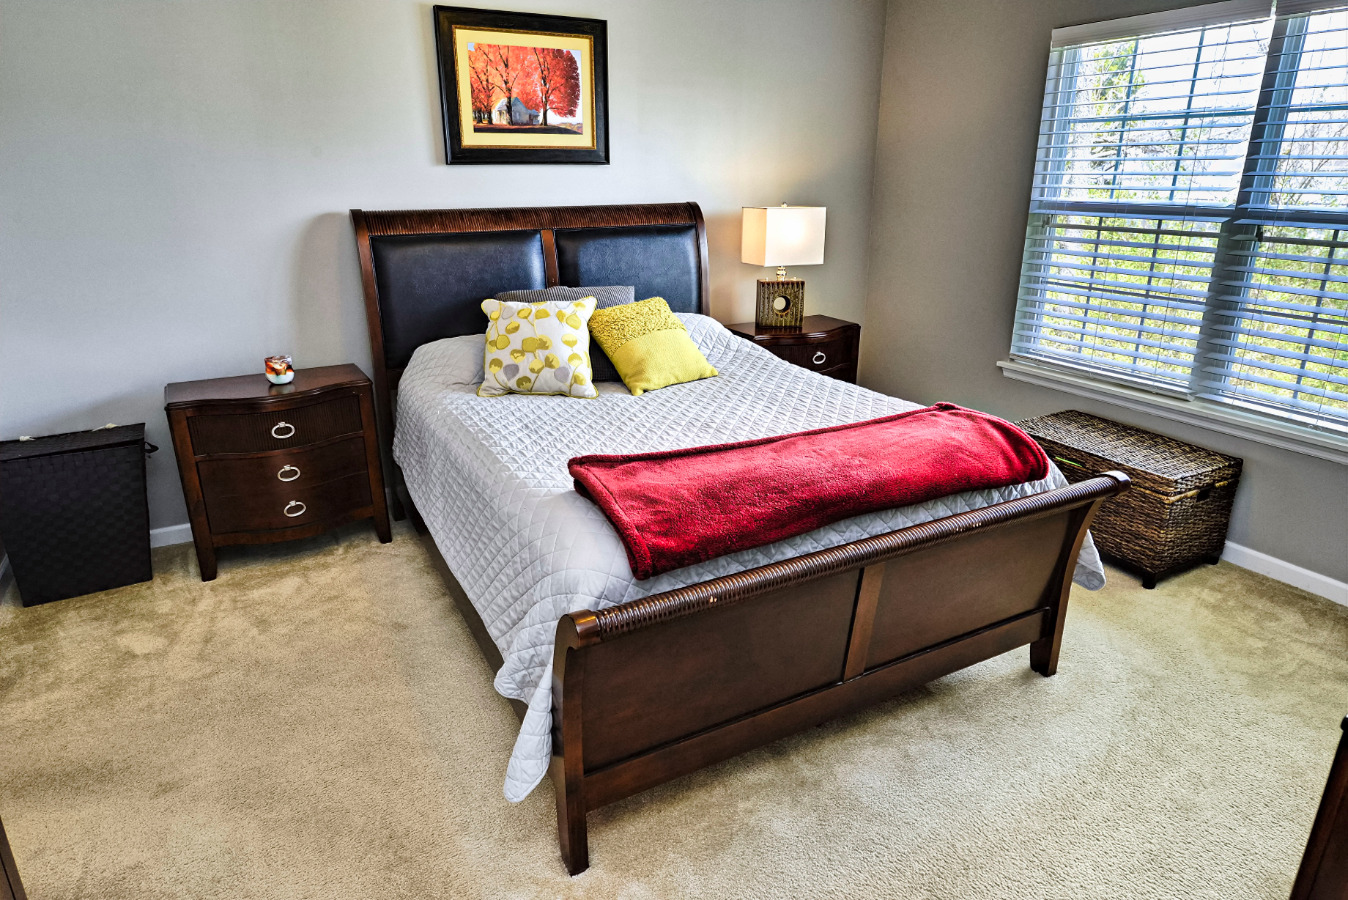 The master bedroom is conveniently located on the first floor.